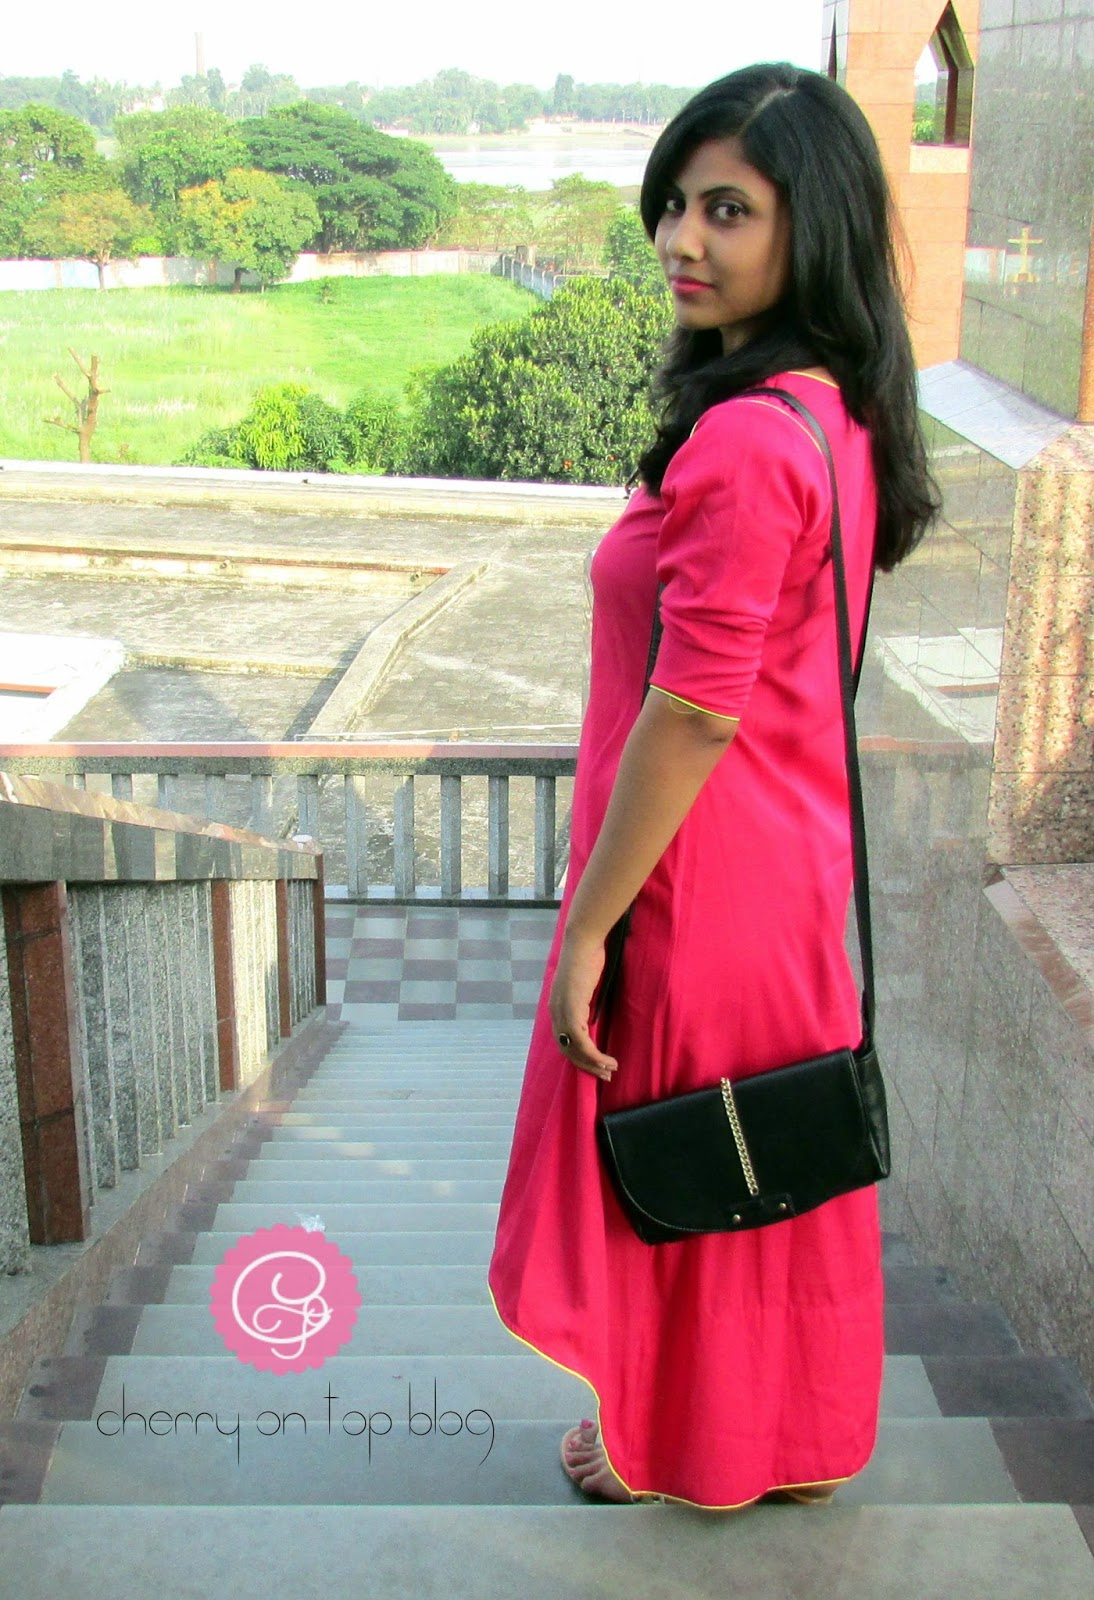 Ethnic and Off-beat| OOTD| Fashion| Cherry On Top Blog